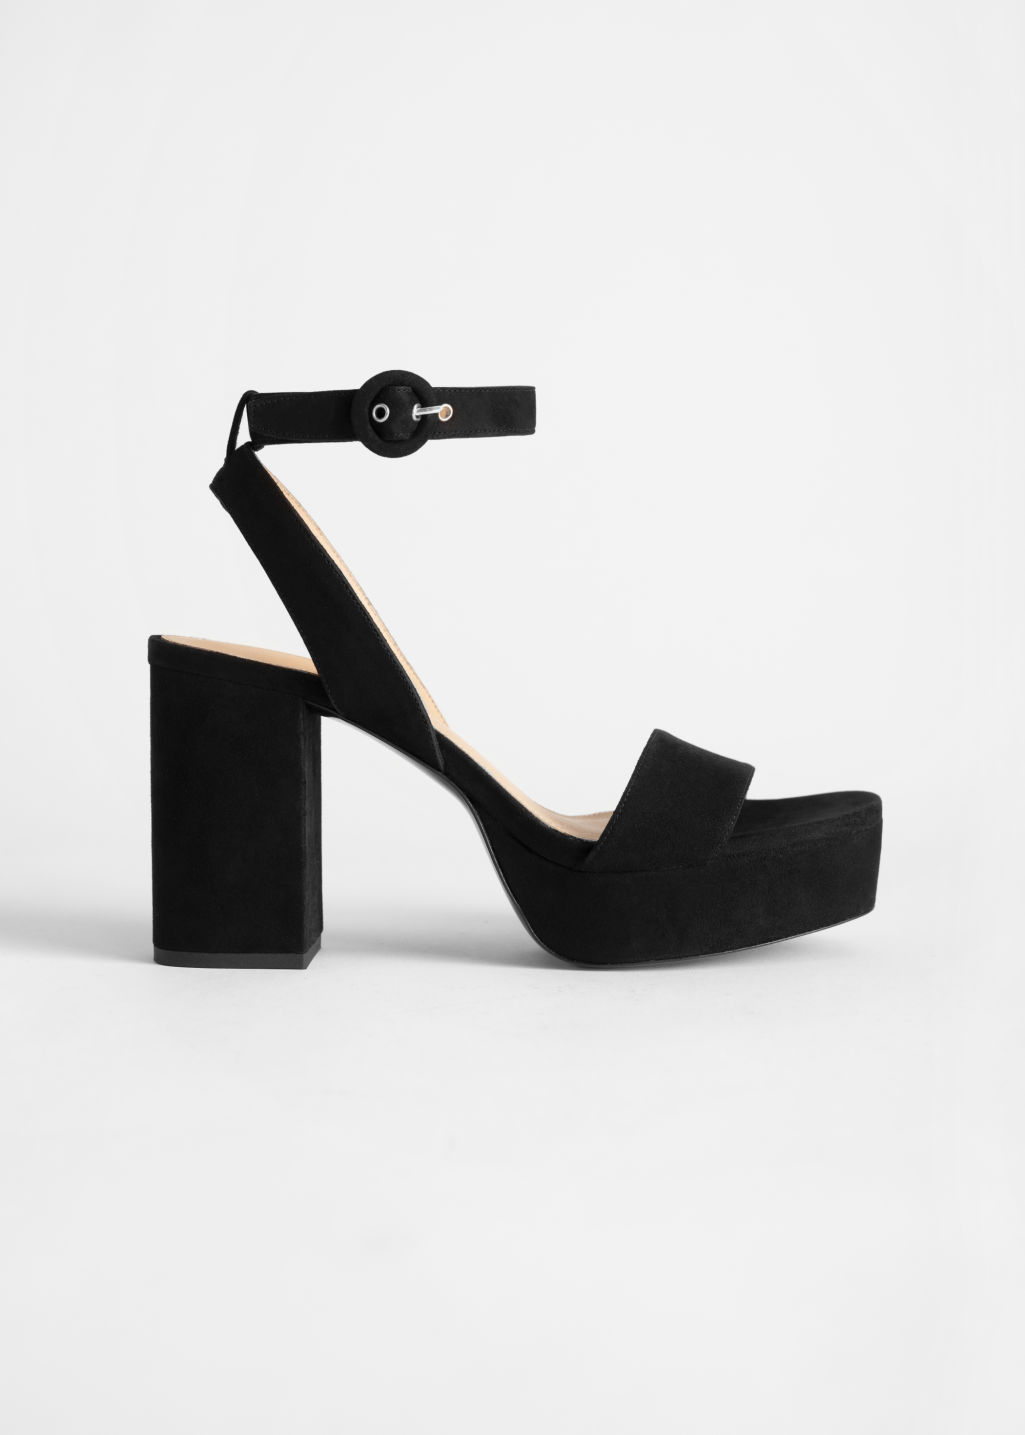 StillLife Front Image of Stories Suede Platform Heeled Sandals in Black